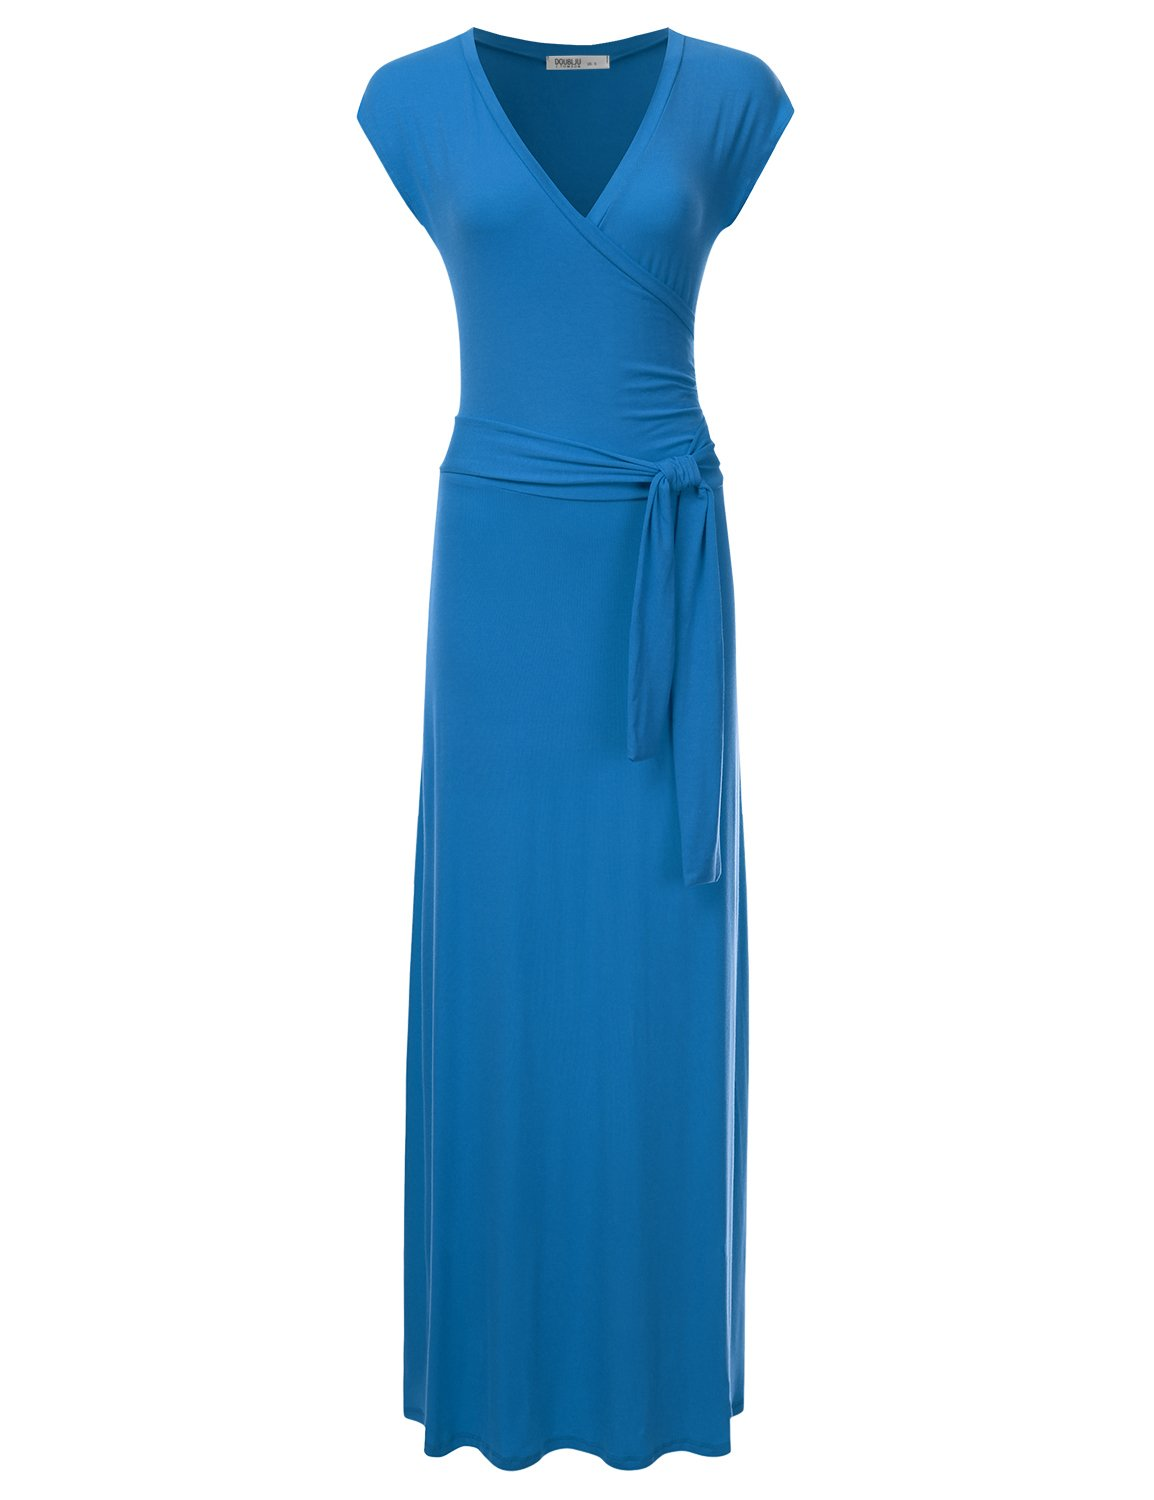 Available at Amazon: NINEXIS Women's V-Neck Cap Sleeve Waist Wrap Front Maxi Dress